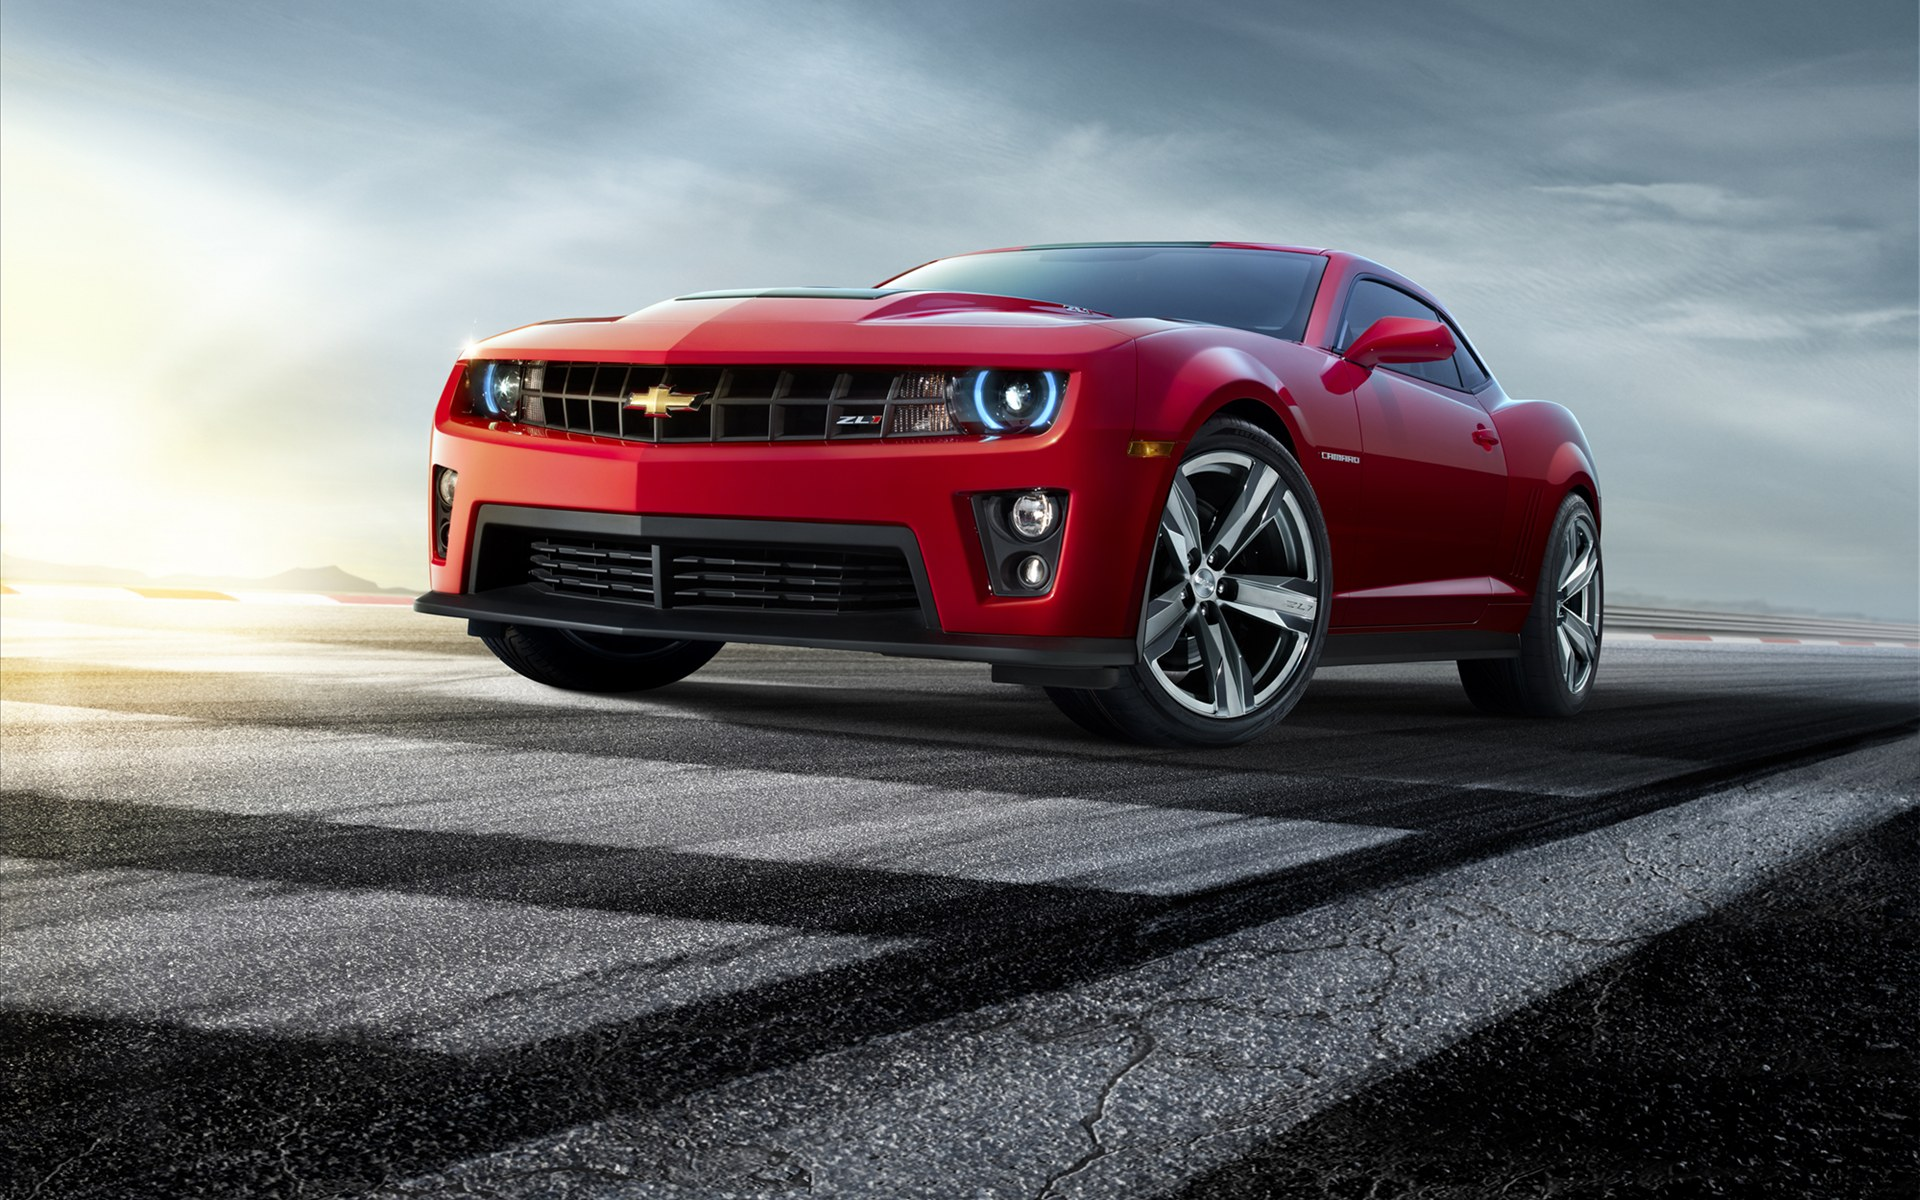 Chevrolet Camaro ZL1 2012 Wallpapers HD Wallpapers 1920x1200